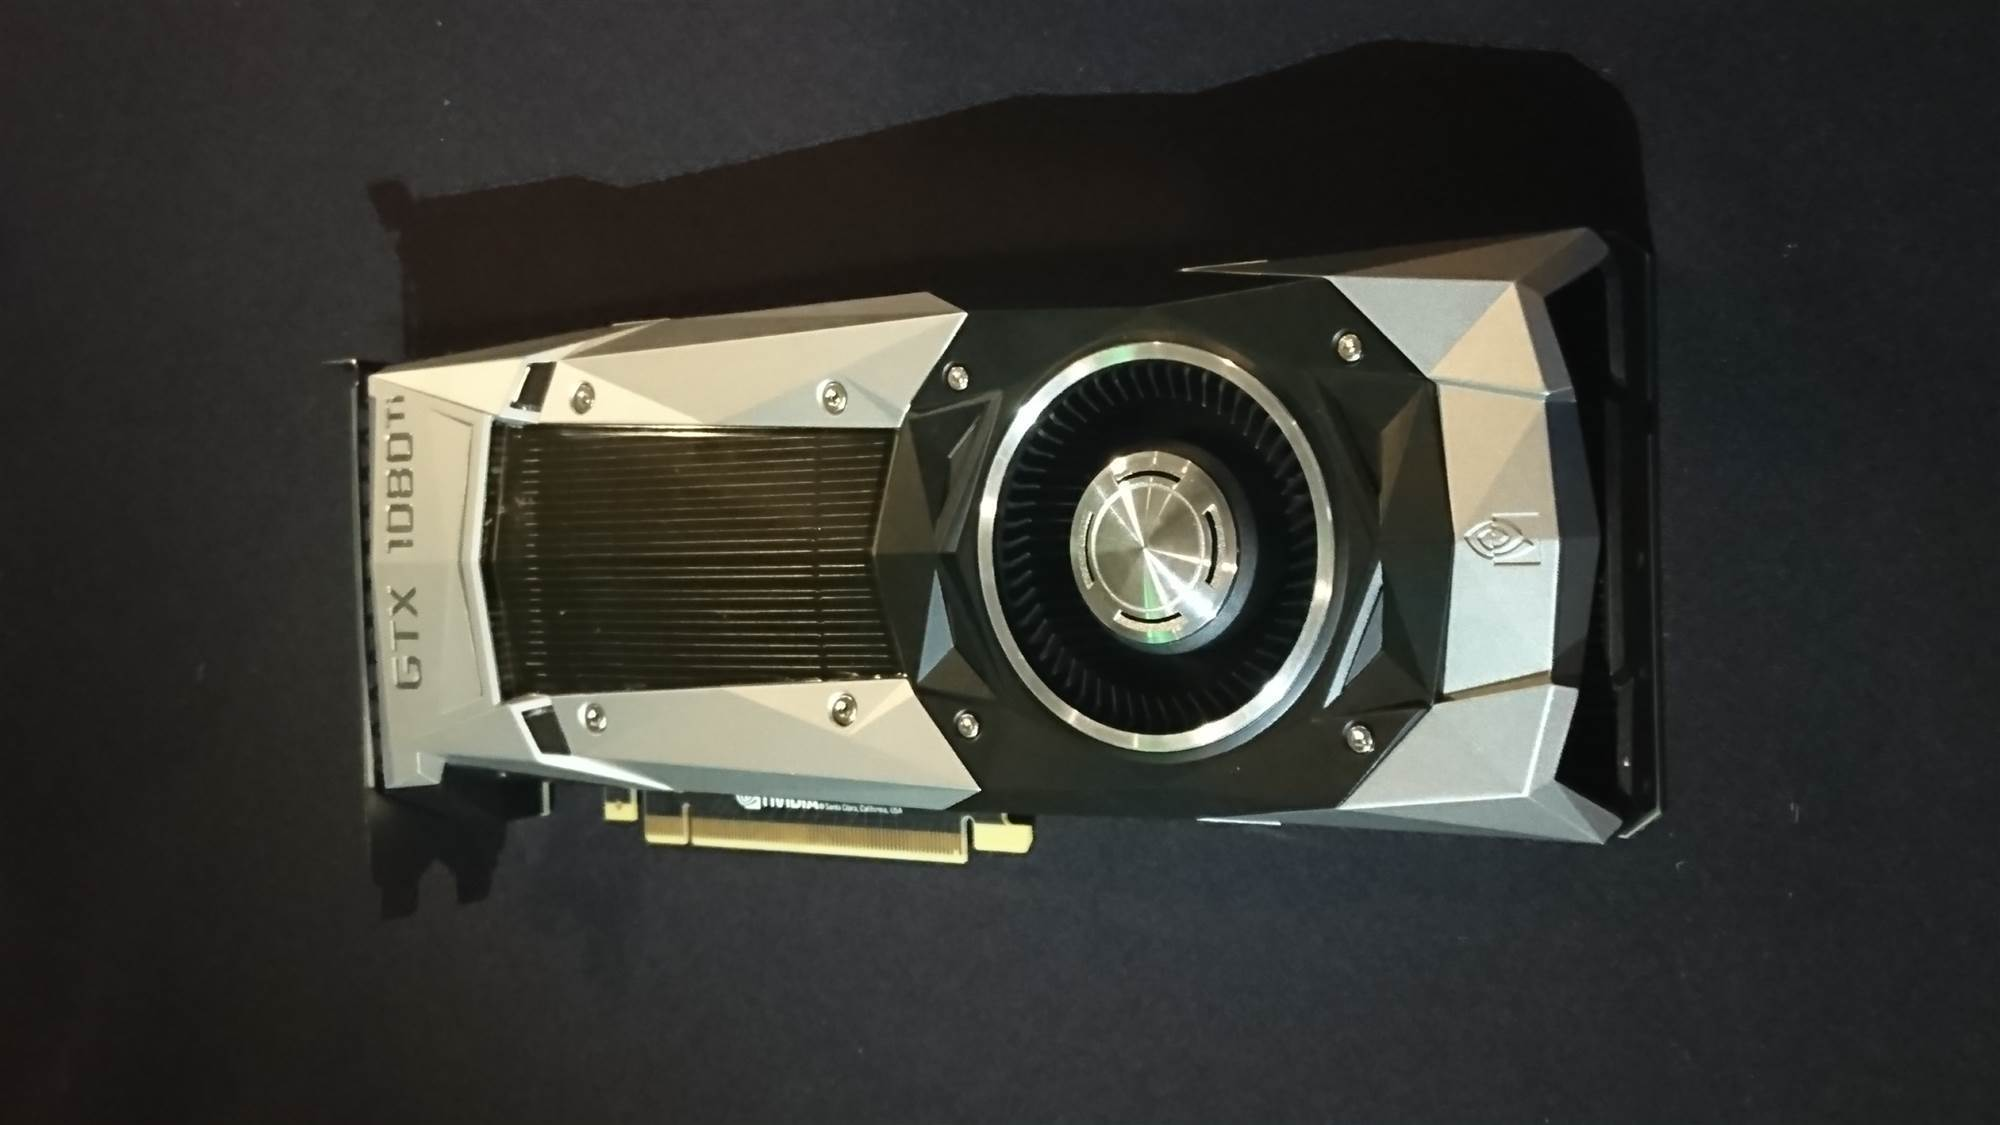 Nvidia's new GTX 1080 Ti is a ripsnorter - 35% faster than a standard 1080 and faster than a Titan X!